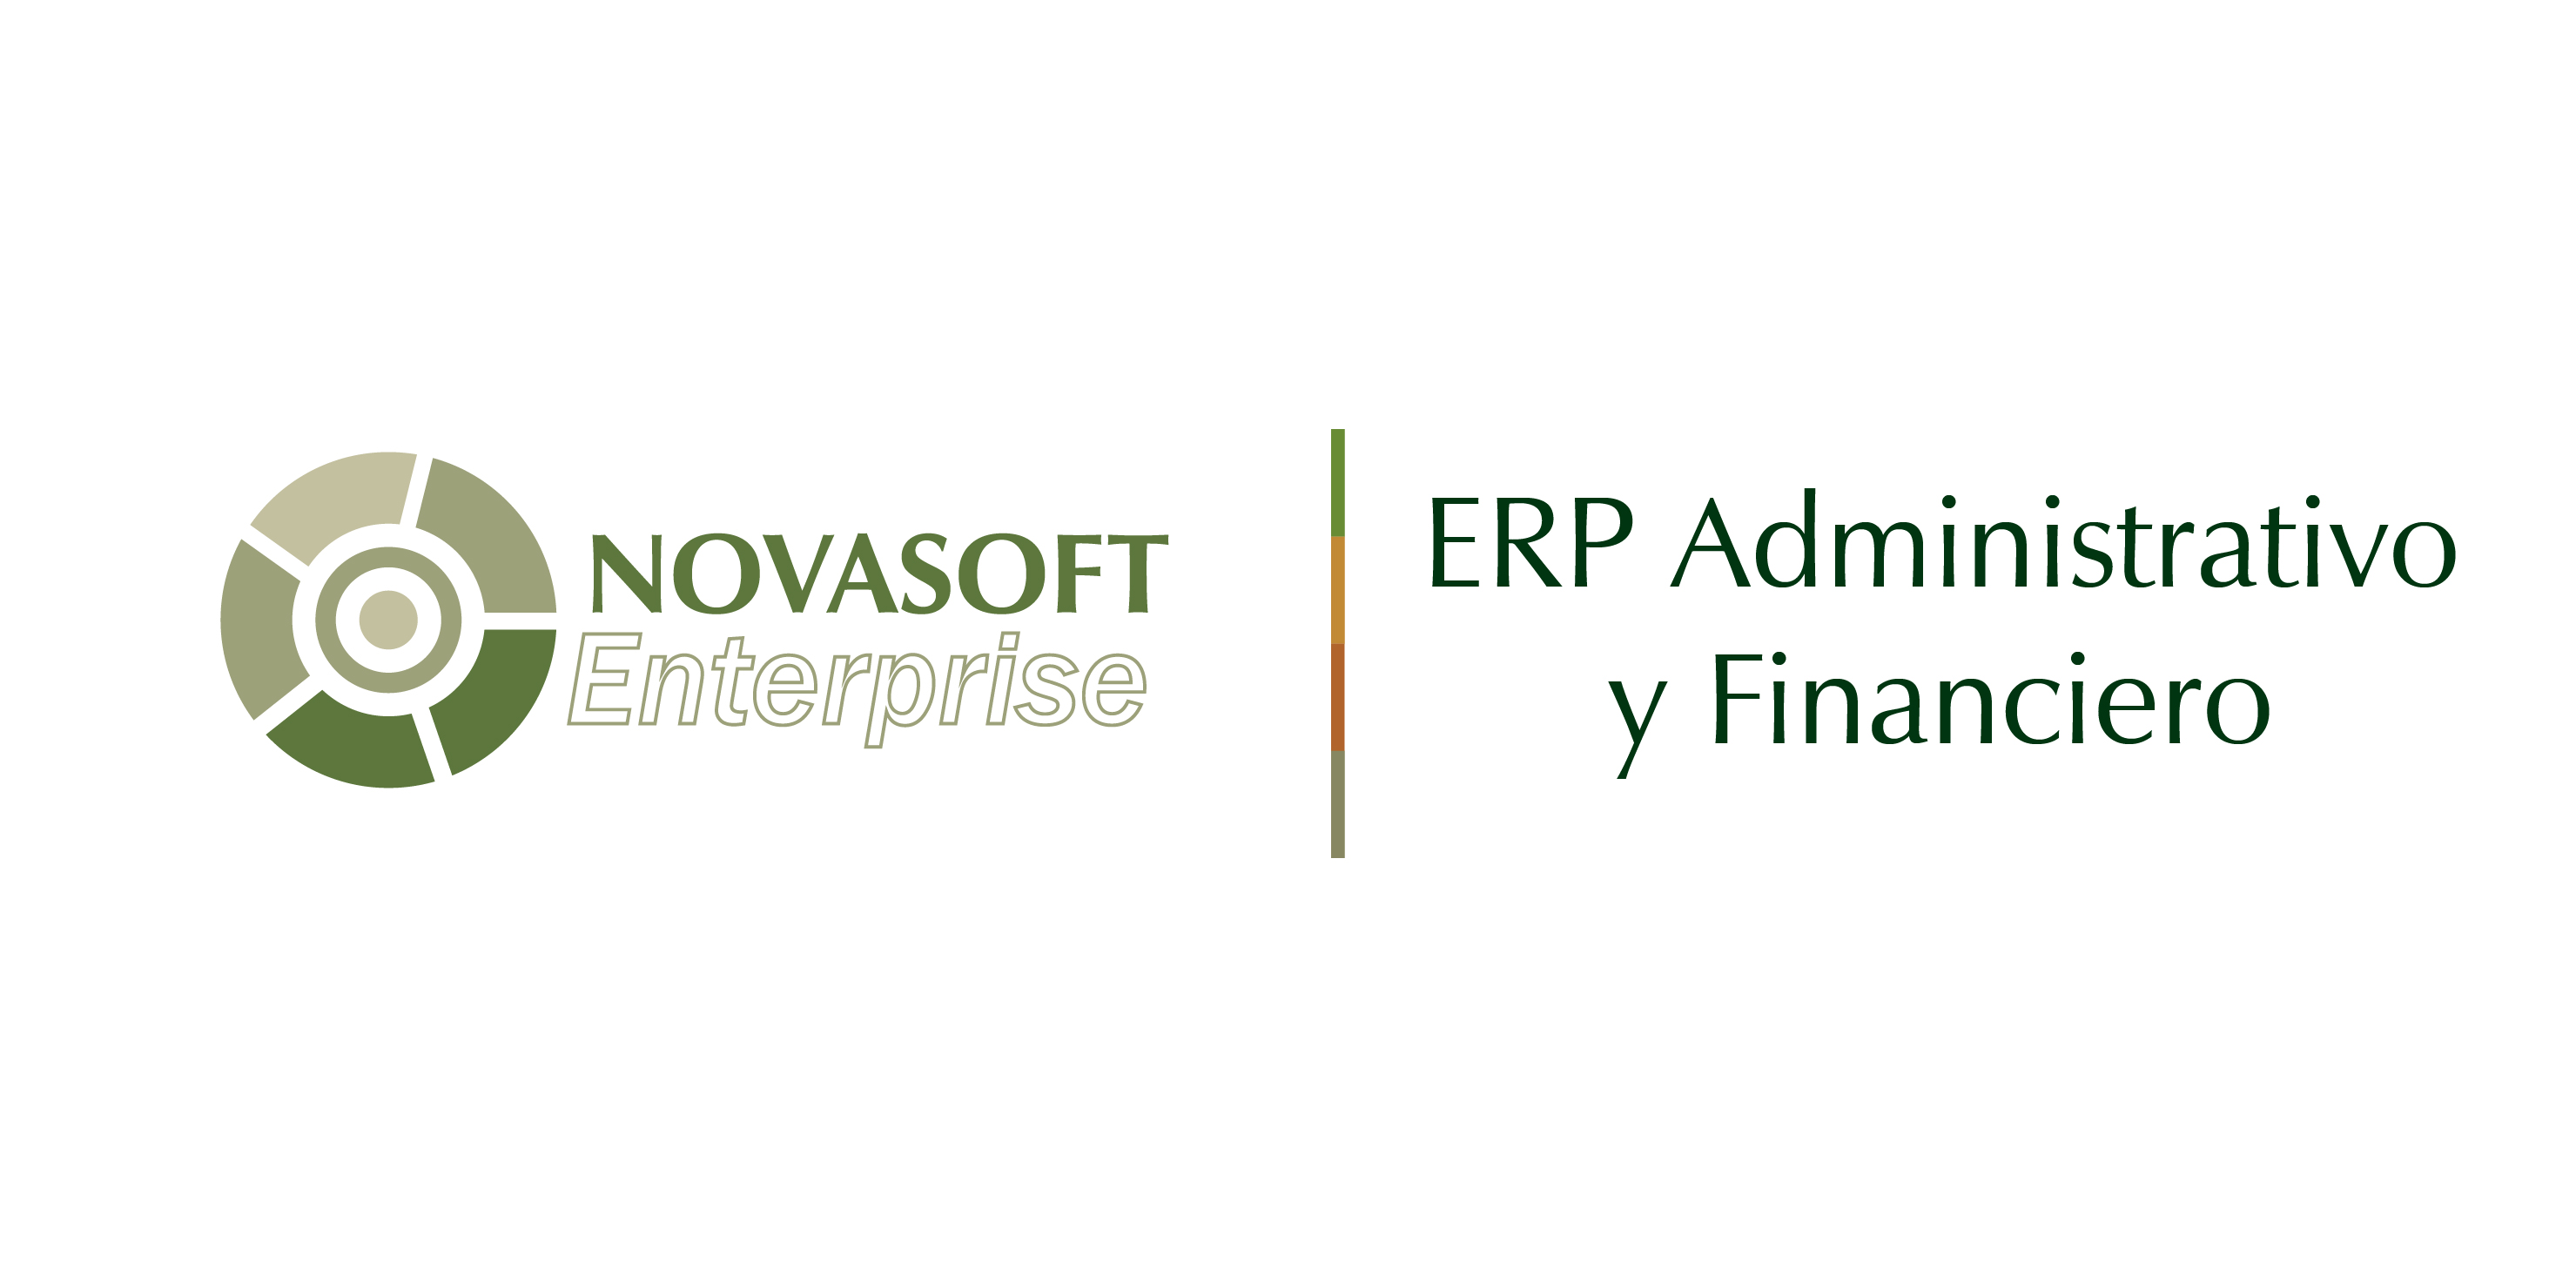 Novasoft Enterprise WEB ERP - Software Administrativo y Financiero de Gestión Modular e Integrado – ERP